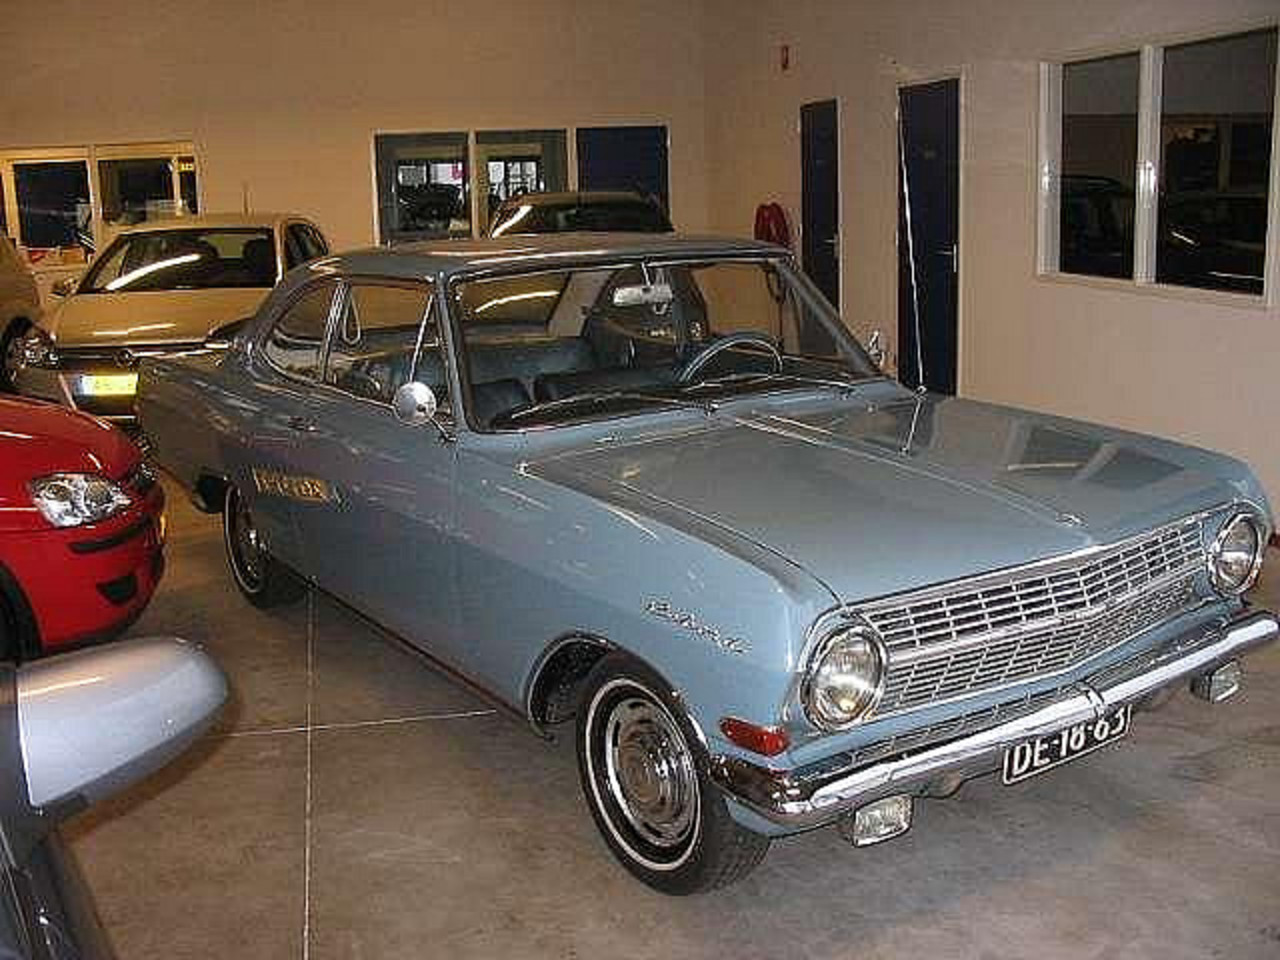 Opel Rekord 1700 coupe 1964 by willemsknol